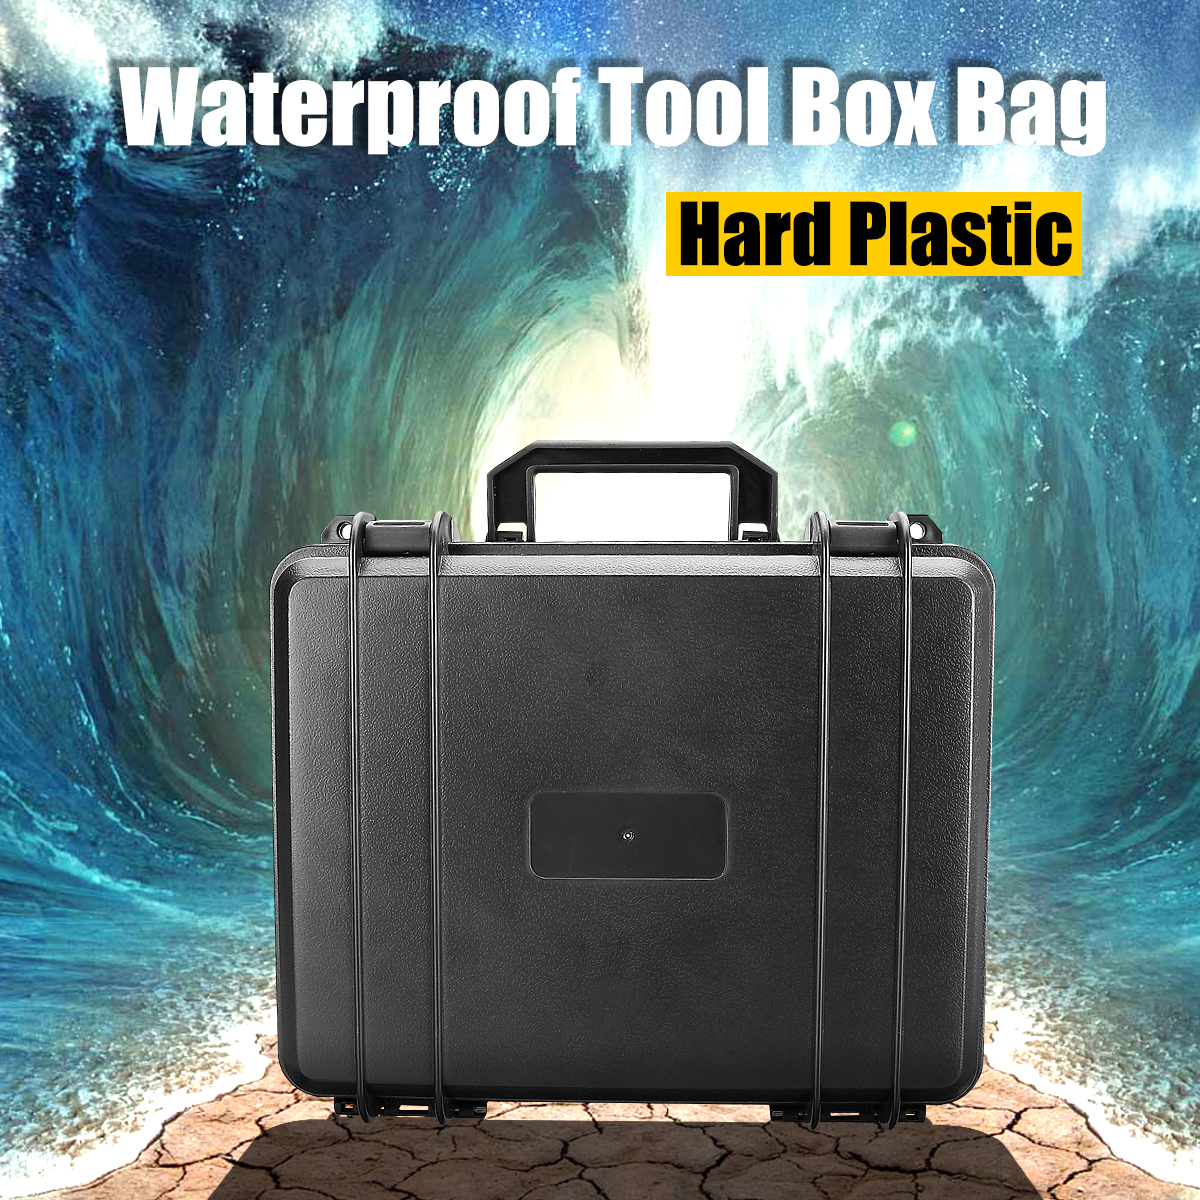 280*240*130mm Abs Plastic Sealed Waterproof Safety Equipment Case Portable Tool Box Dry Box Outdoor Equipment Hand Tool Sets 1pcstoolbox 280 246 106 plastic shockproof waterproof tool case plastic sealed waterproof safety equipment case portable box